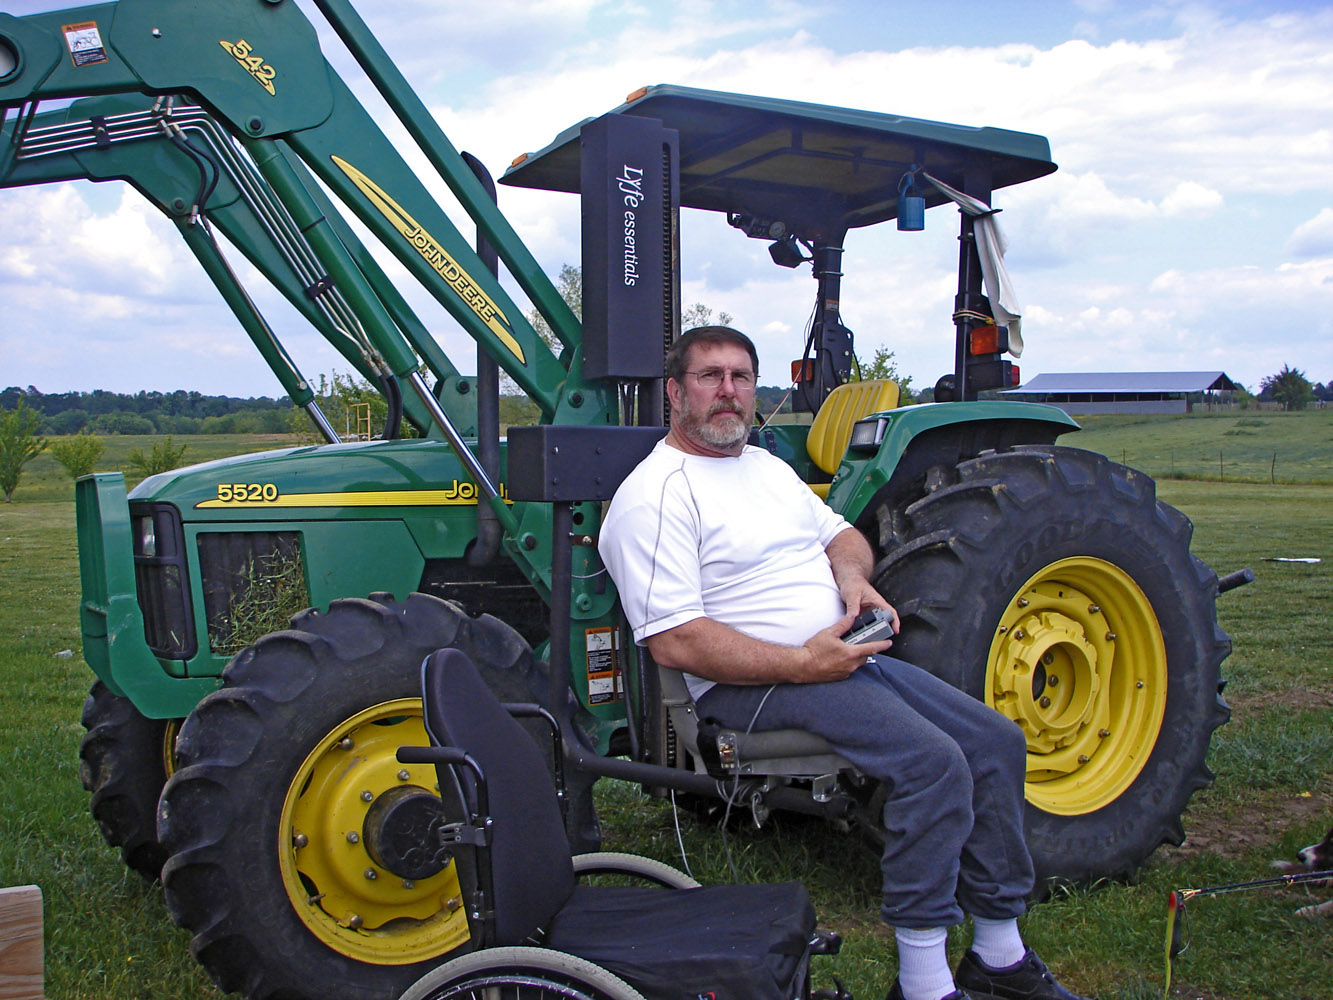 Tractor Wheelchair Lift : Agrability helps a farmer stay on farm mississippi state